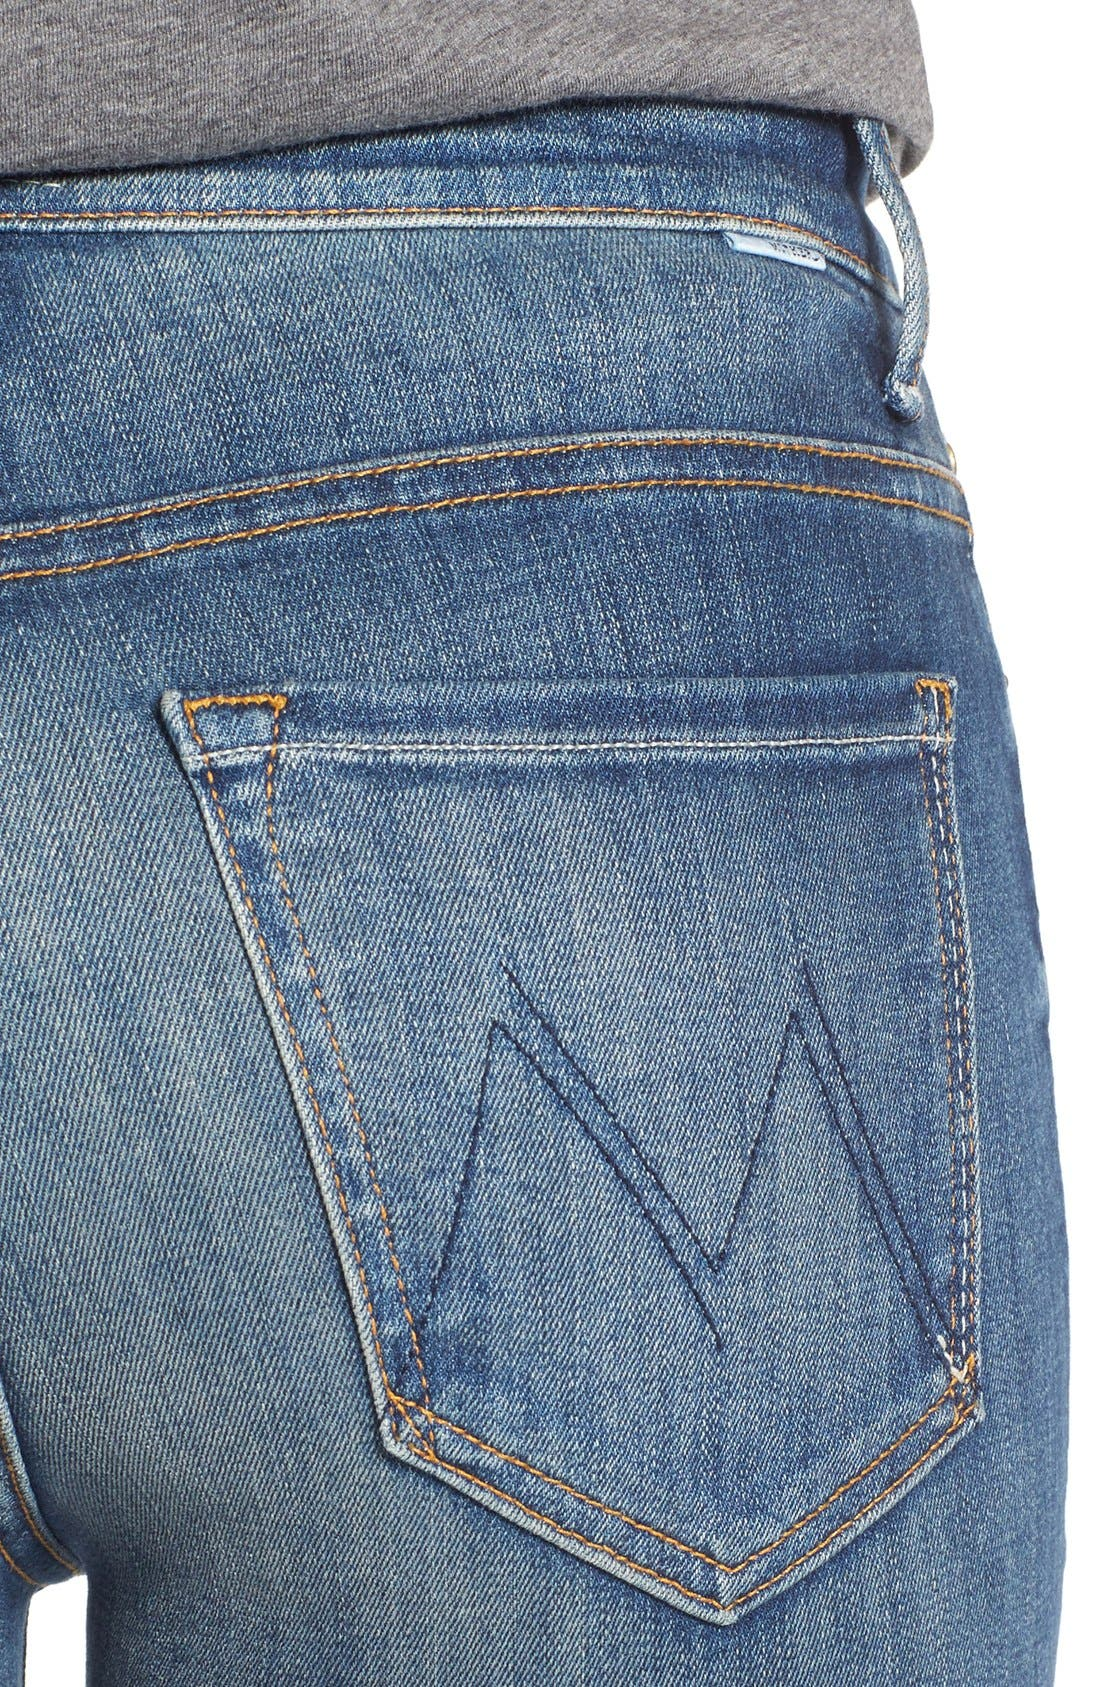 'The Insider' Crop Step Fray Jeans,                             Alternate thumbnail 5, color,                             420